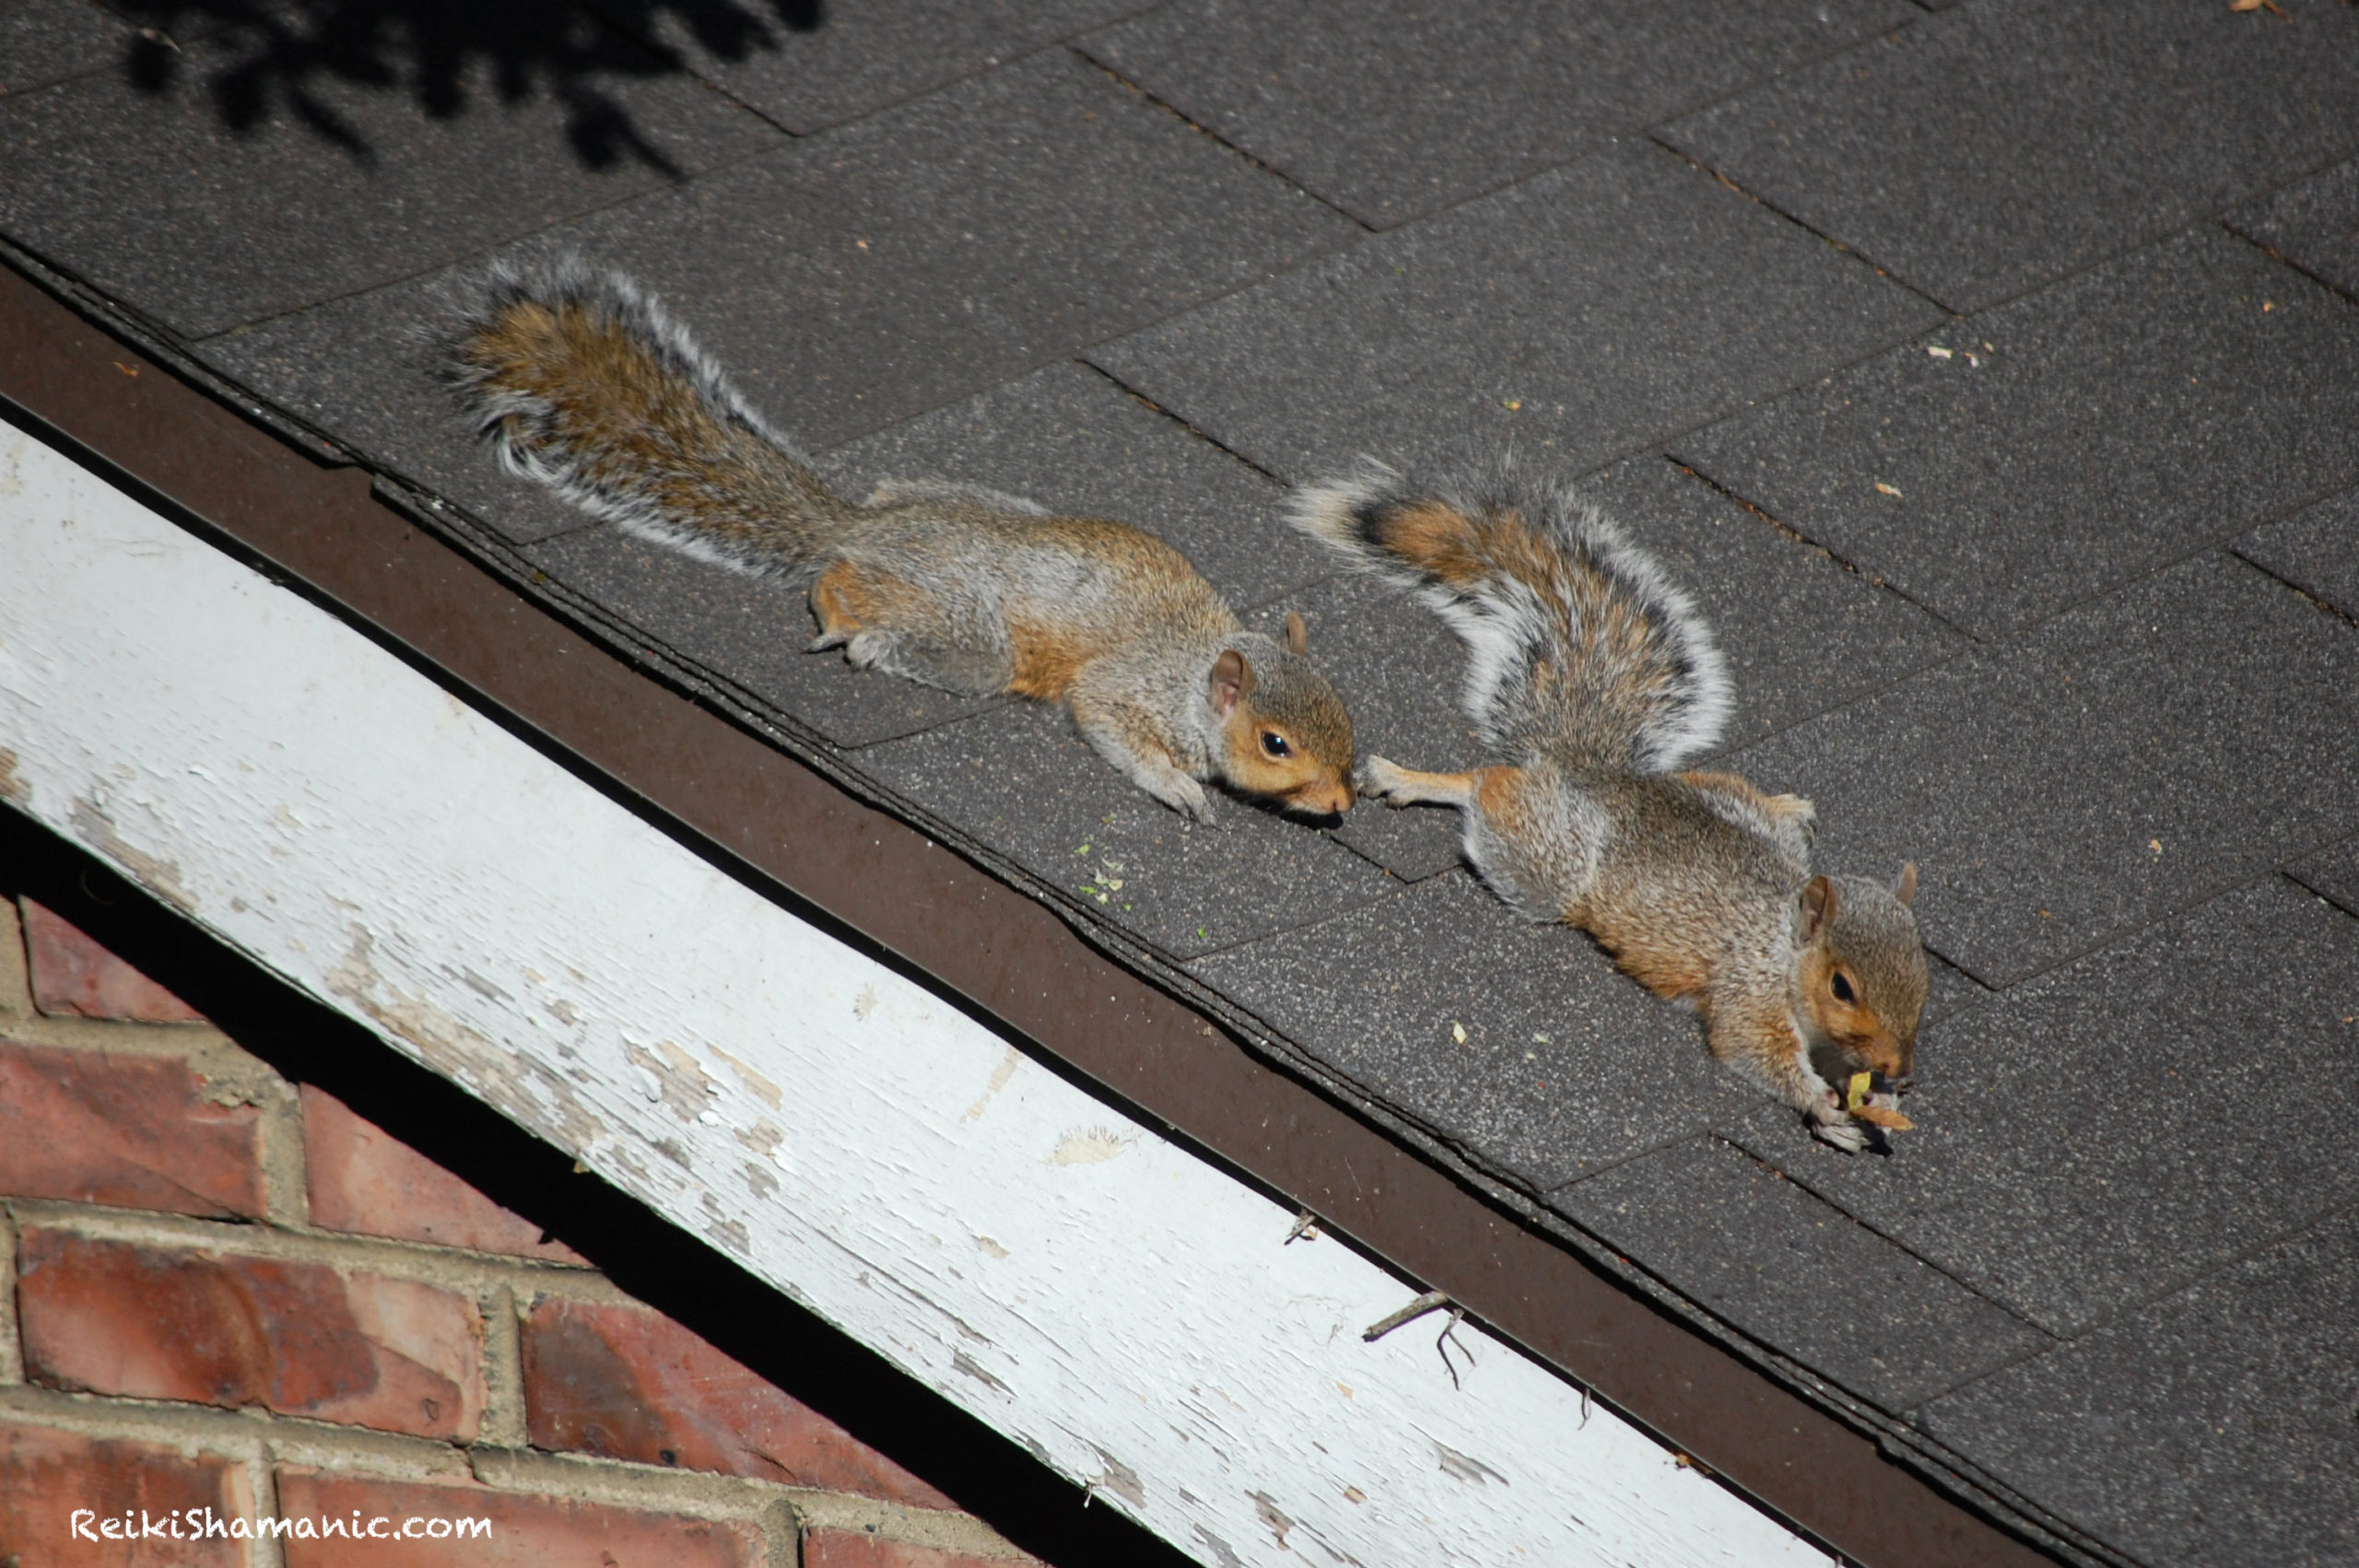 What Do Squirrels Do On Sunny Days?